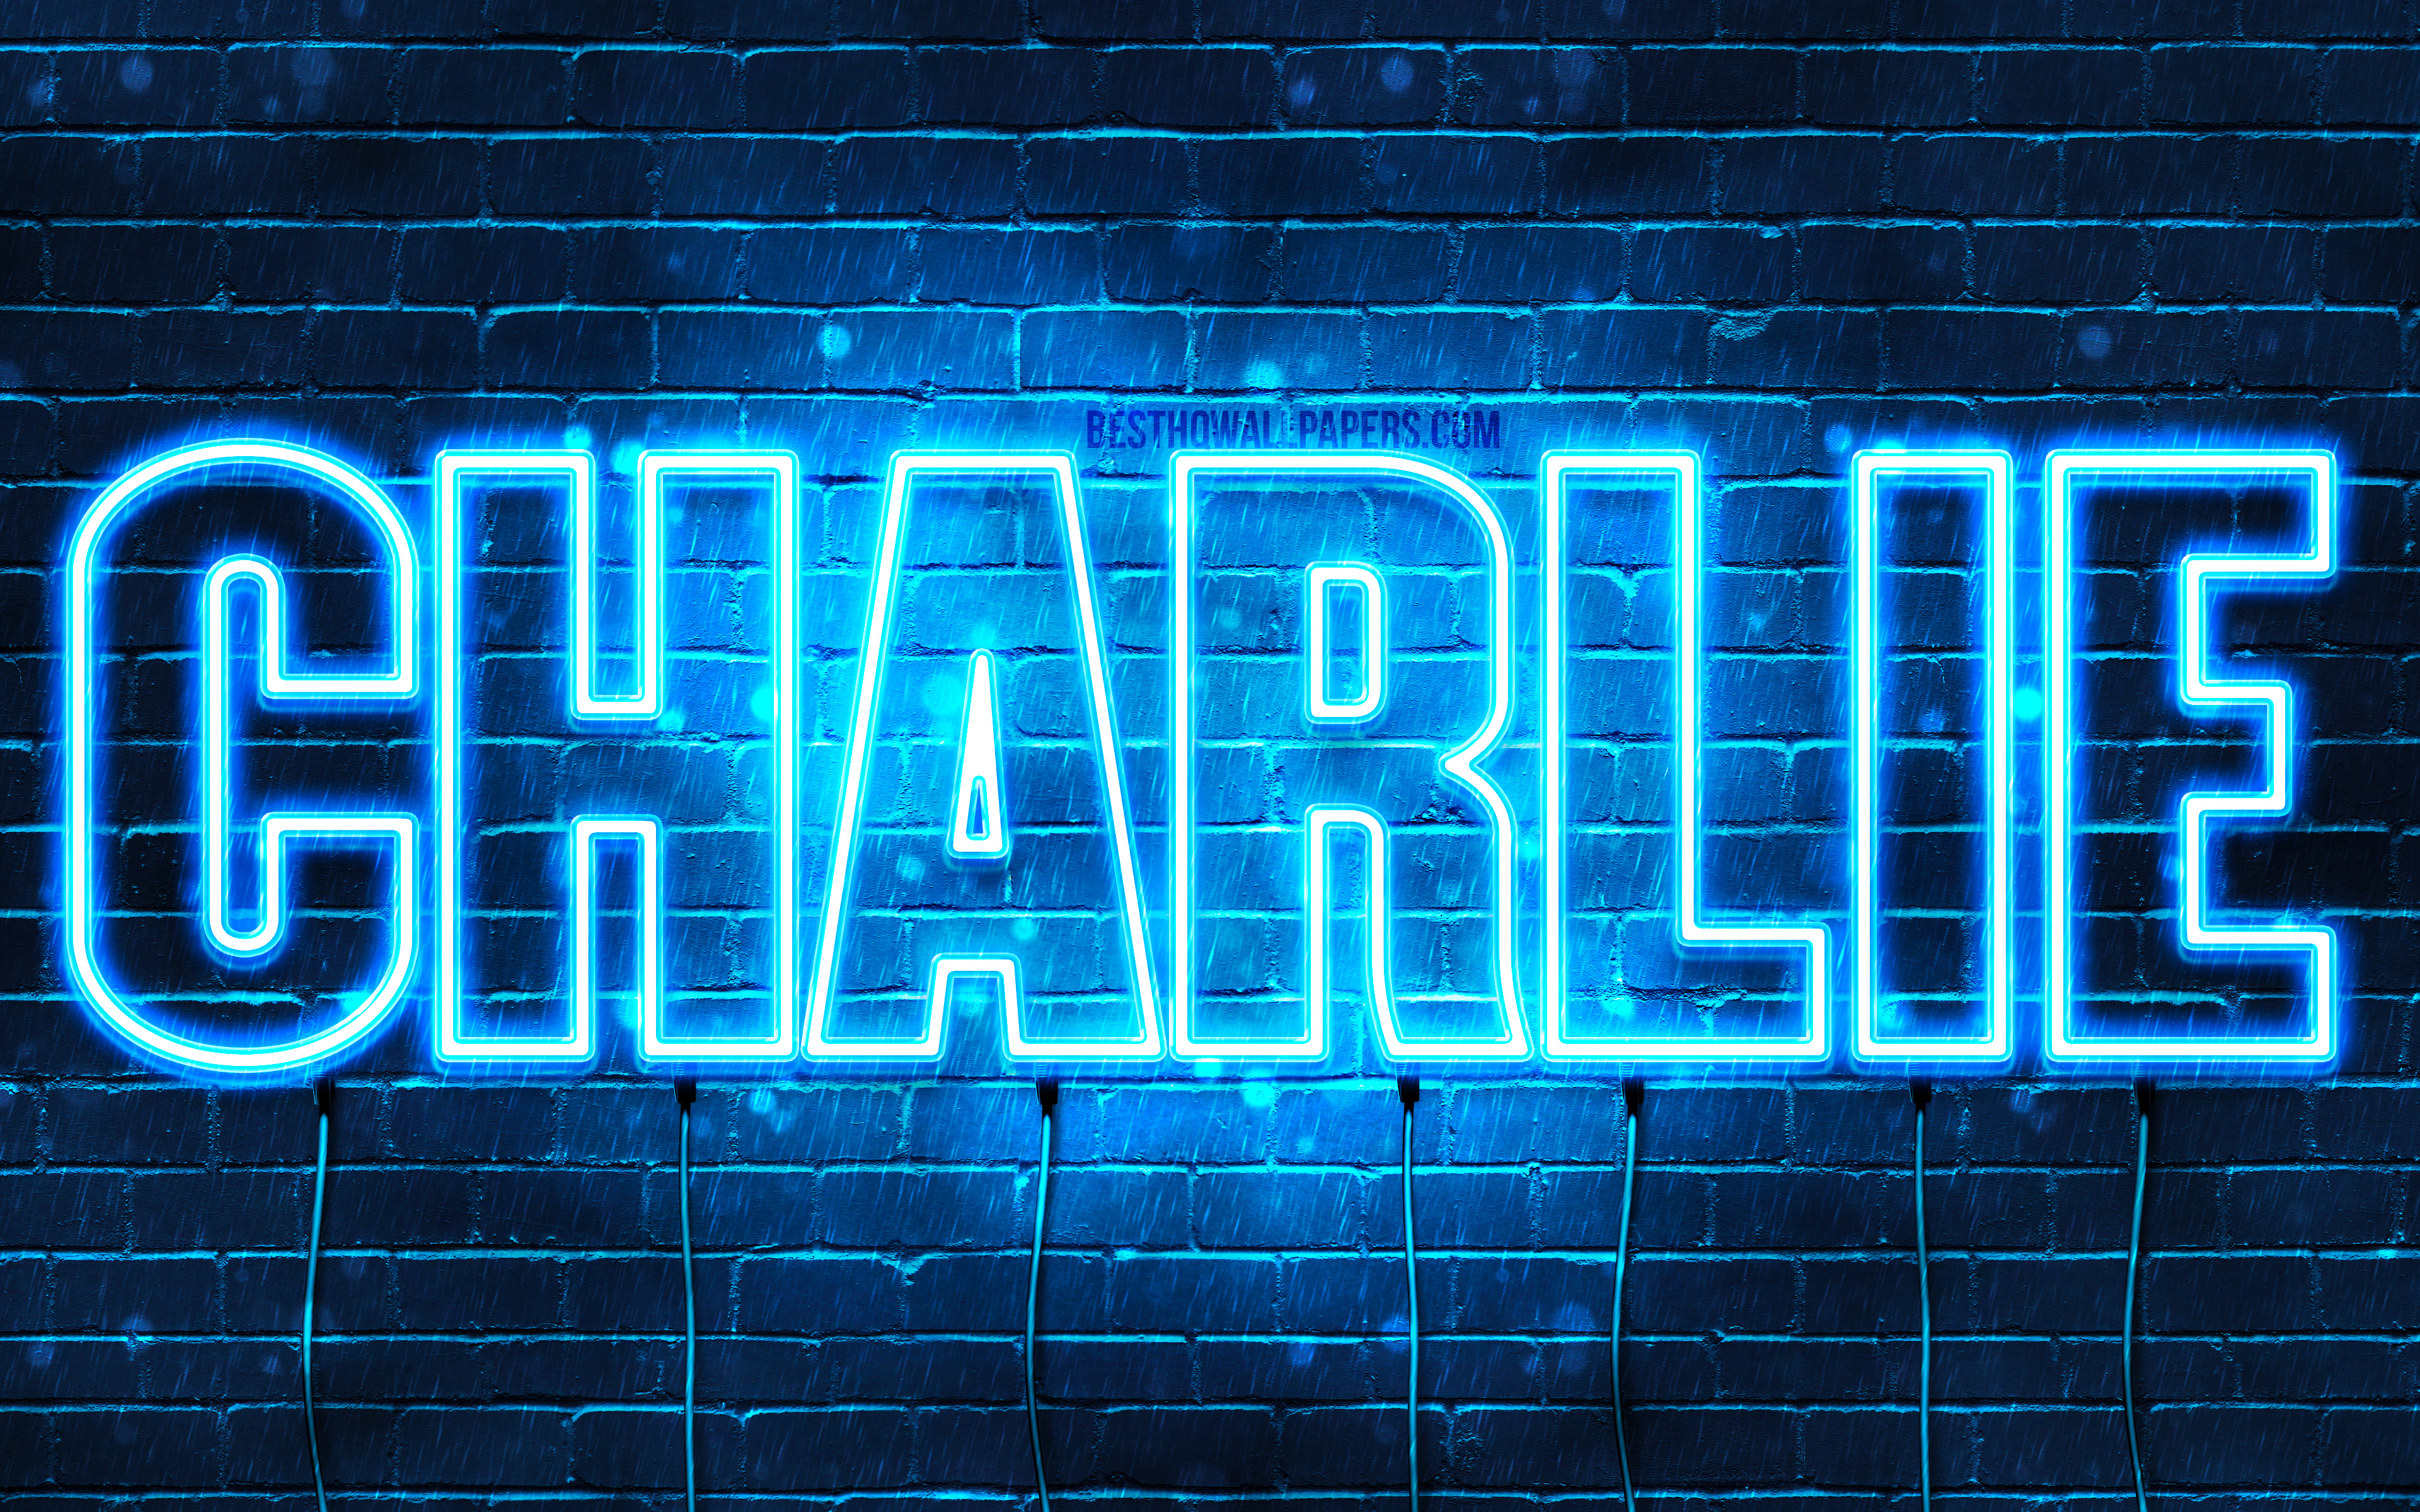 Charlie, 4k, wallpapers with names, horizontal text, Charlie name, blue neon lights, picture with Charlie name